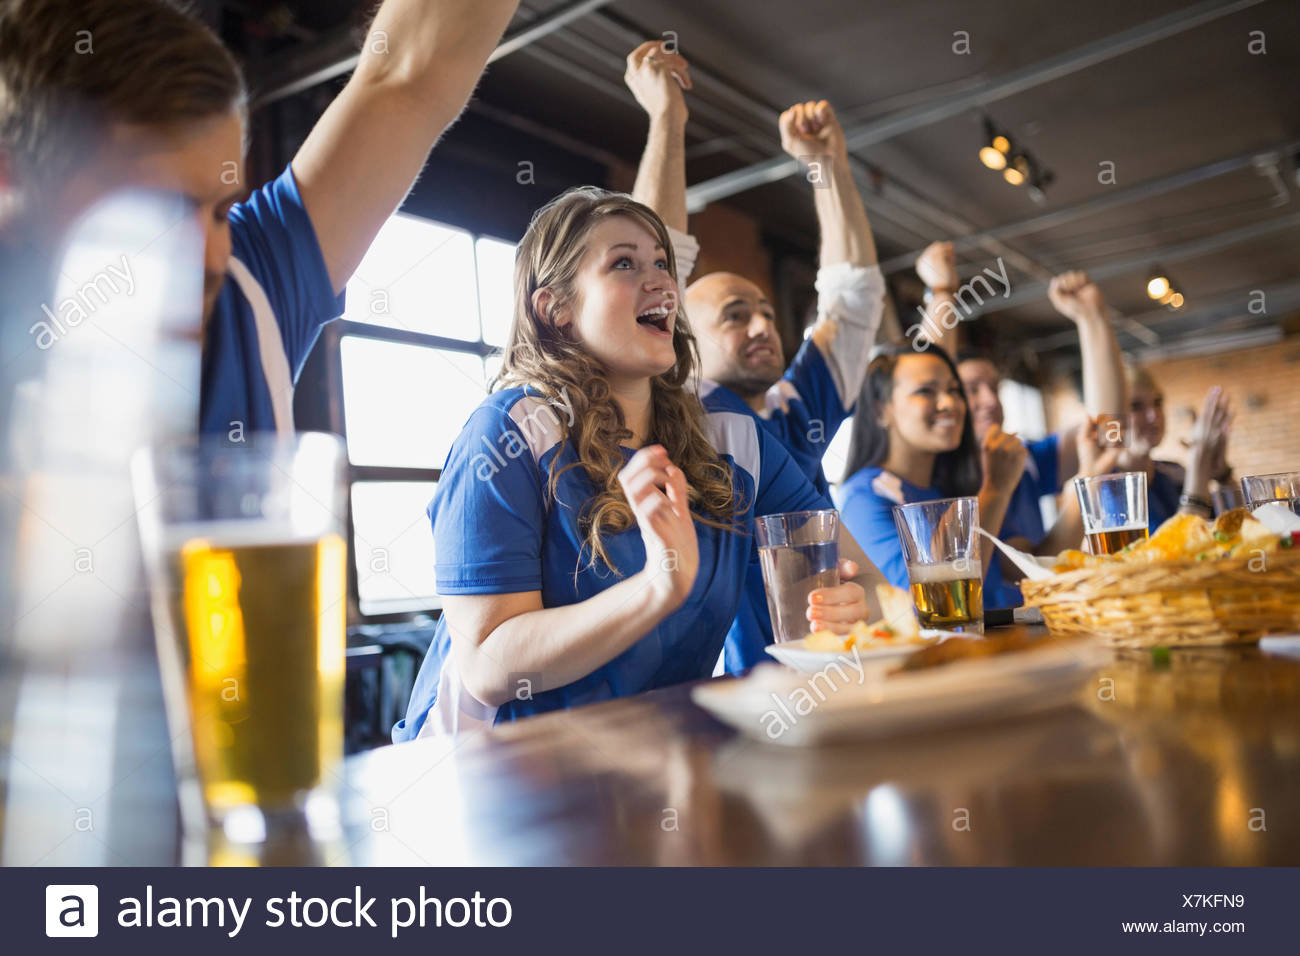 Sports fans cheering at bar in pub - Stock Image